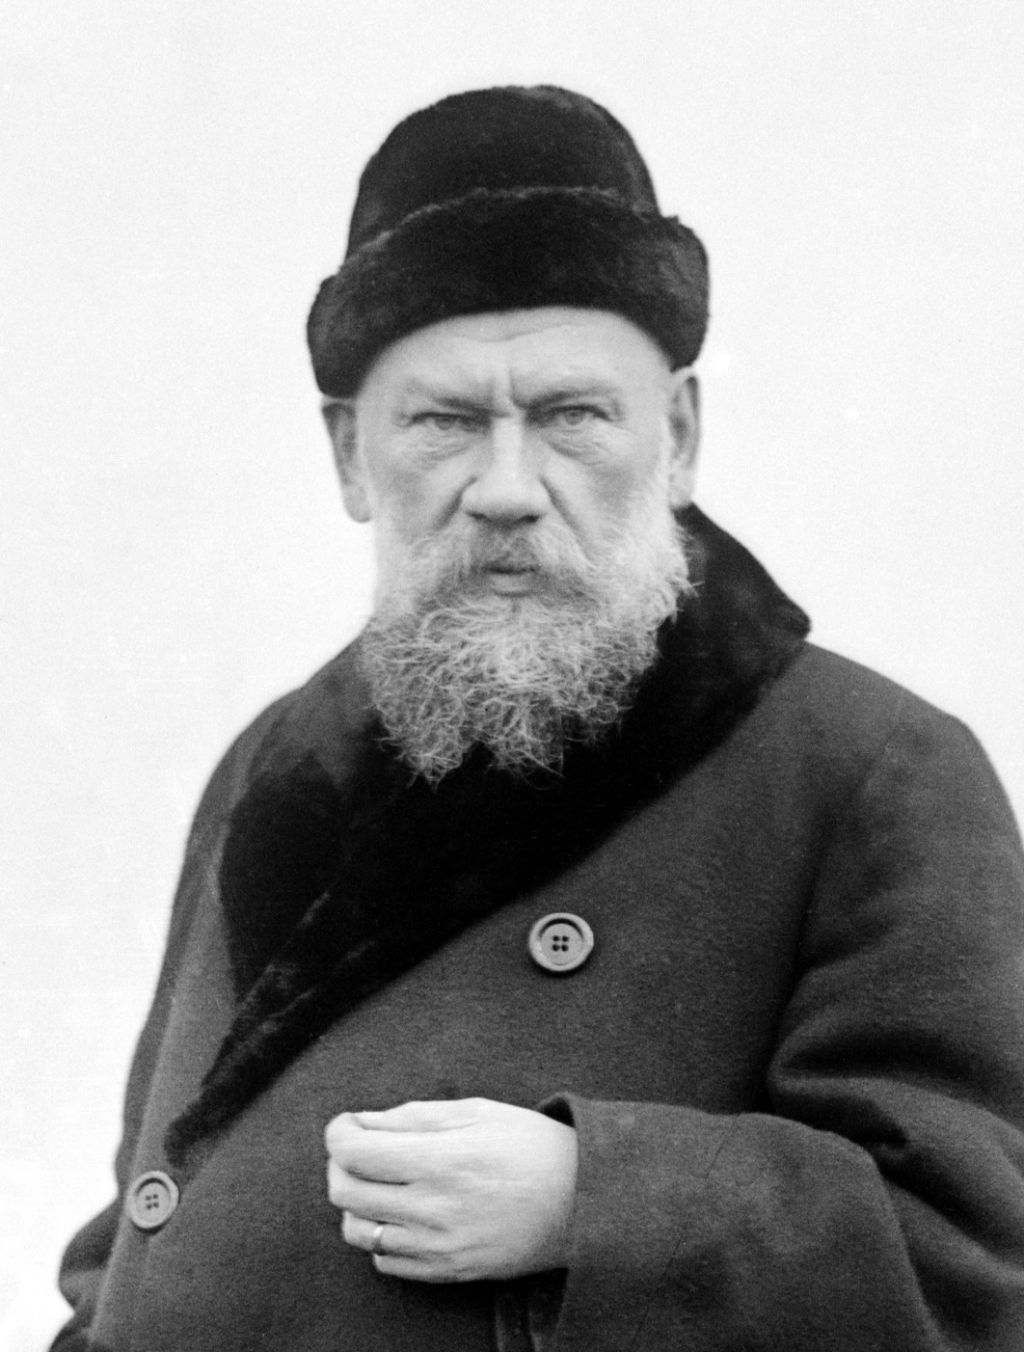 death of ivan ilych essay The death of ivan ilych, by leo tolstoy provides a literary portrait of a mans life and death this exercise aims to analyse denial and the inevitability of death.